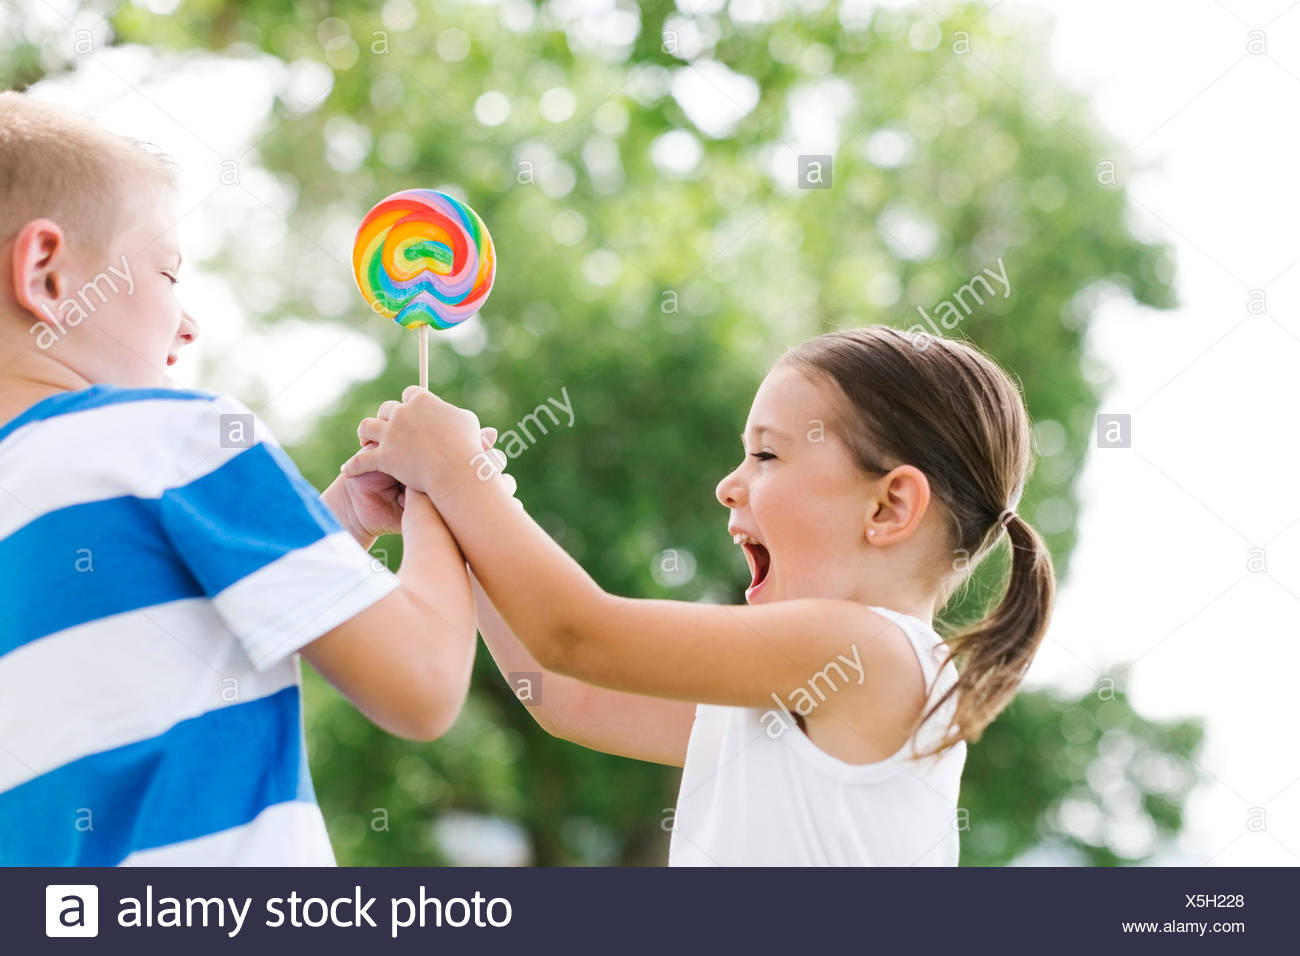 Young boy (6-7) teasing sister (4-5) - Stock Image